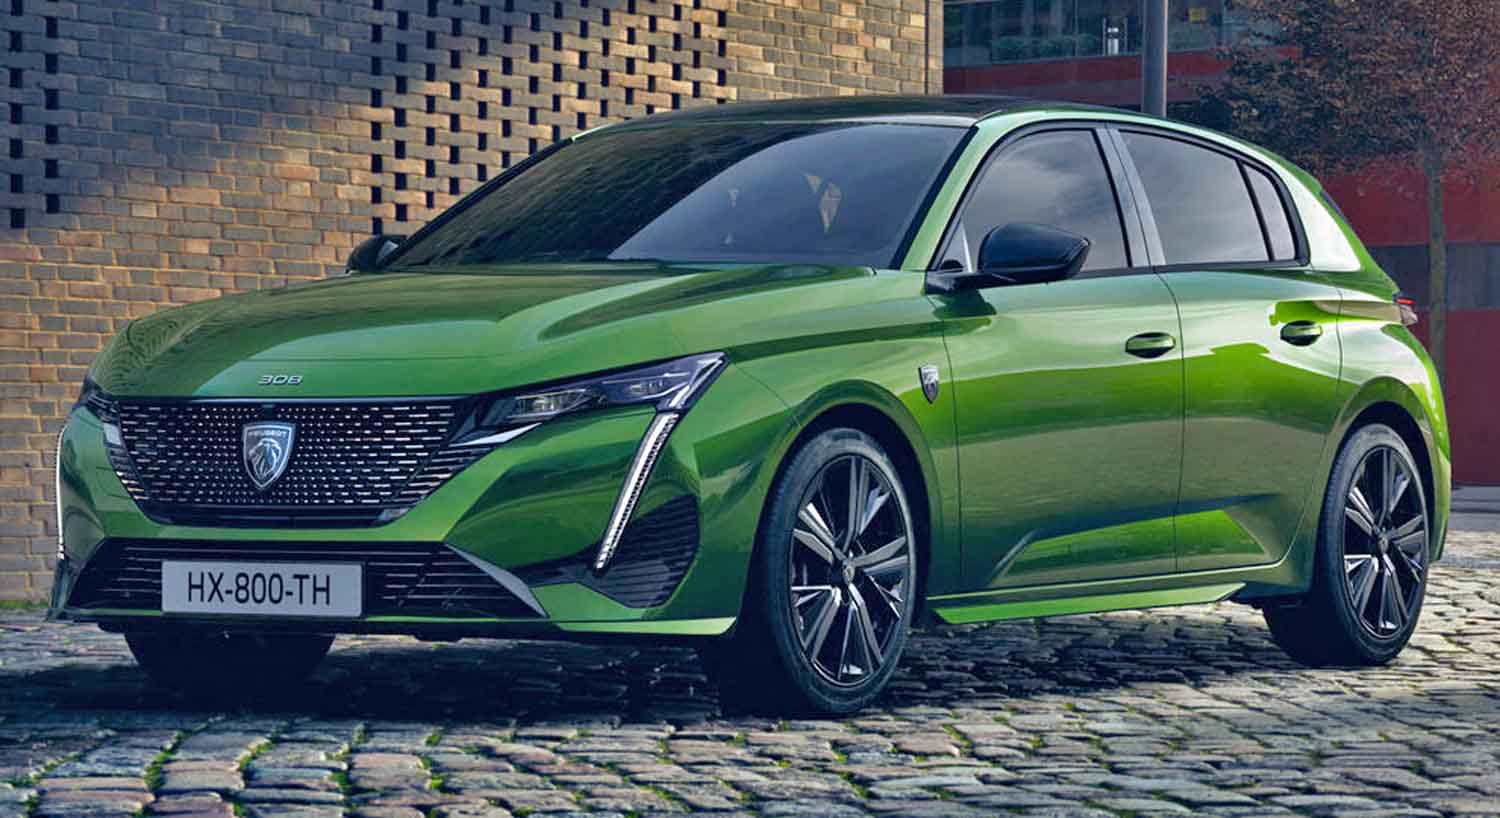 New Peugeot 308 70 % Of Peugeot Models Electric In 2021